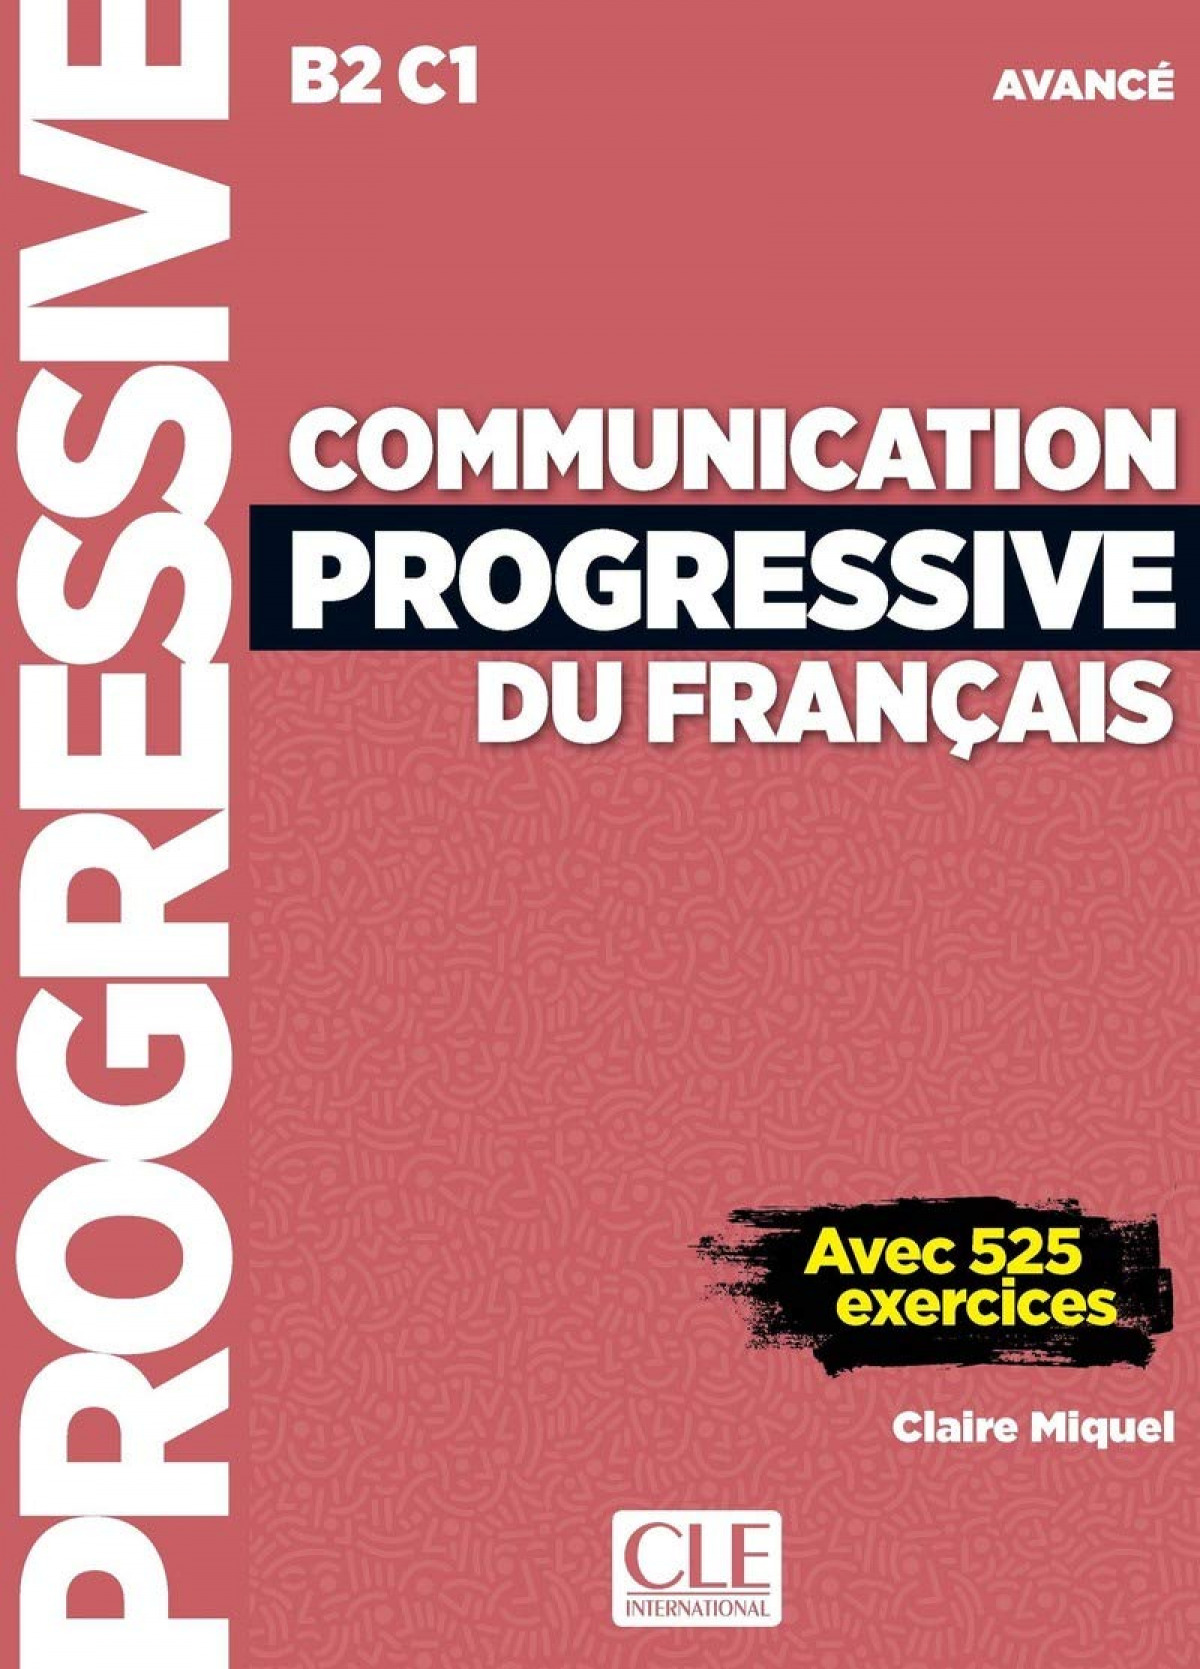 (17).(AVANCE).(B2-C1).COMMUNICATION PROGRESSIVE DU FRANÇAIS